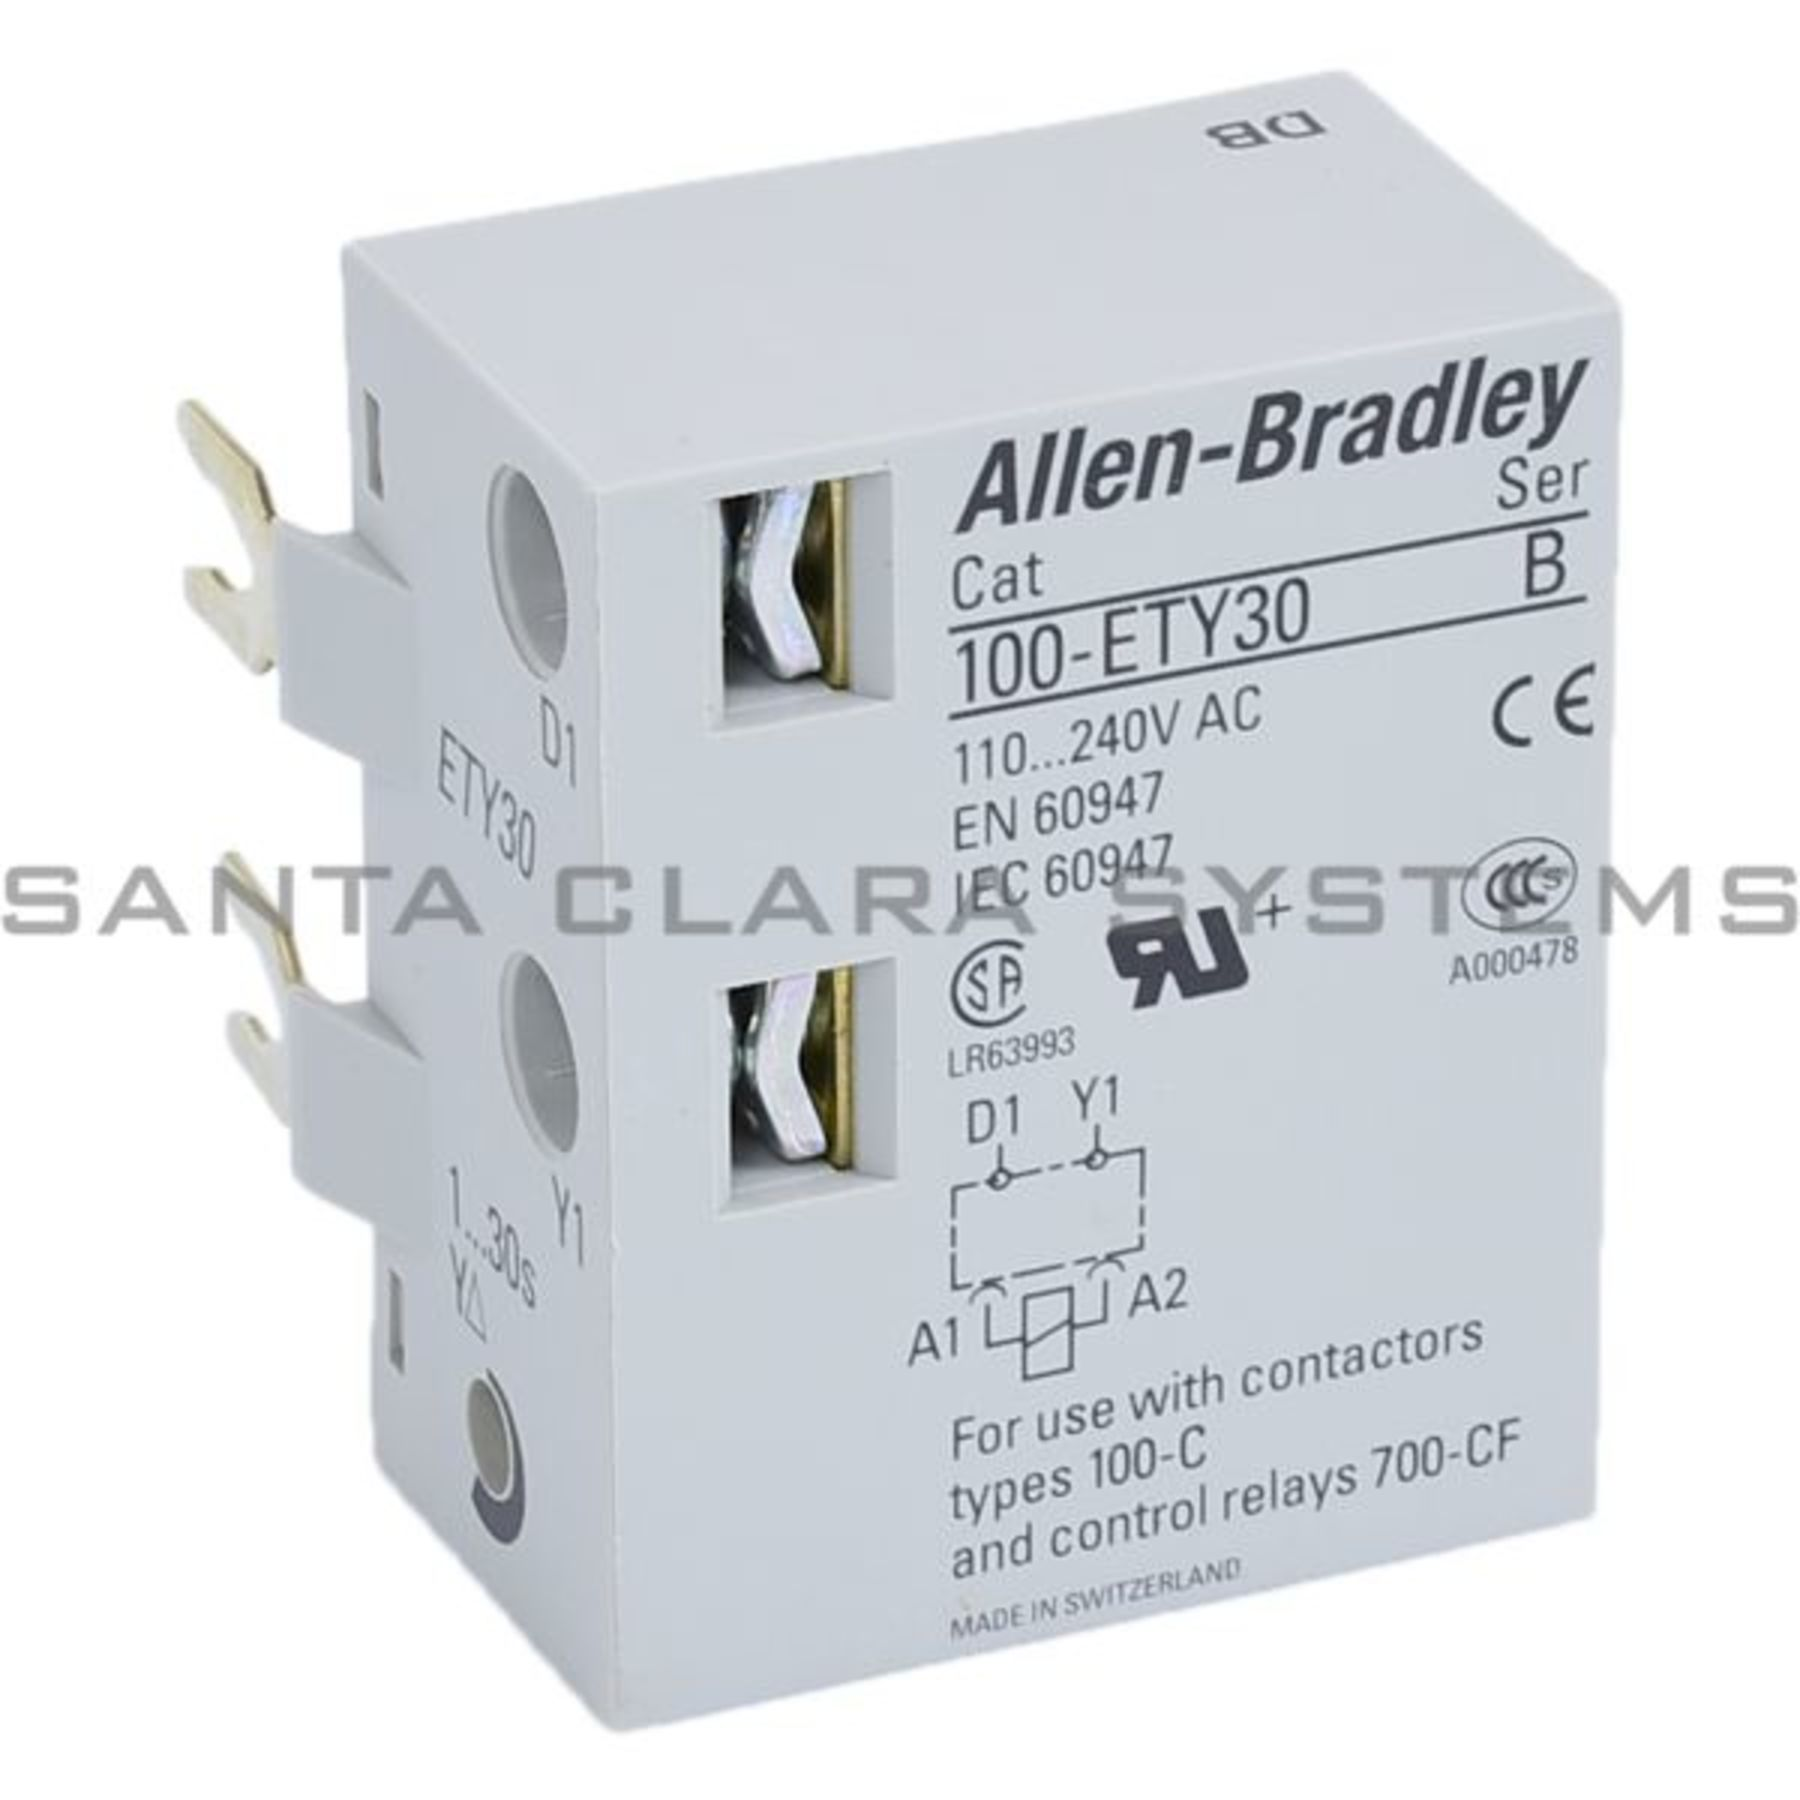 100 Ety30 Allen Bradley In Stock And Ready To Ship Santa Clara Systems The Following Types Of Circuit Breakers Relays Timers Electronic Wye Delta Timer Product Image